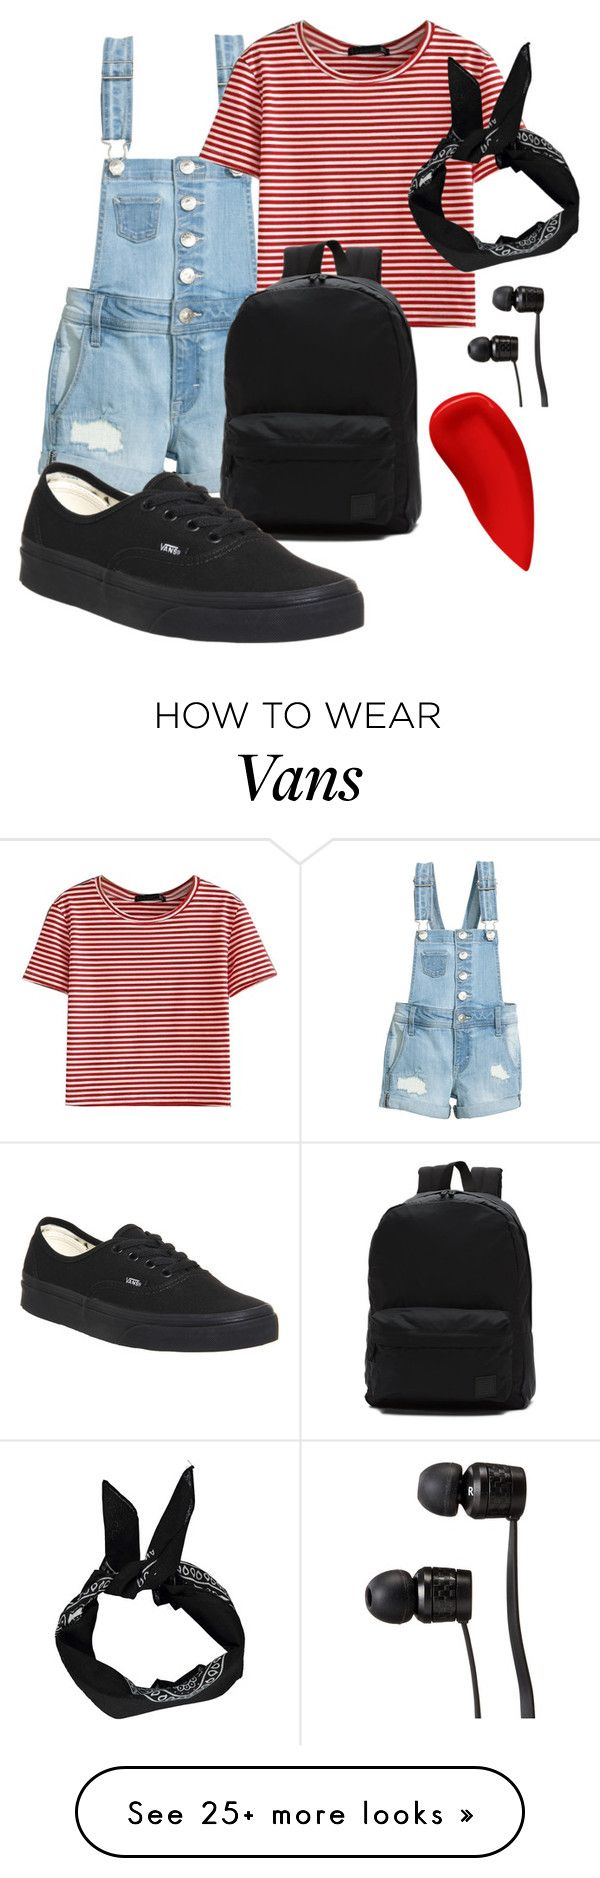 """""""Red stripes?"""" by auroraliu on Polyvore featuring WithChic, Vans, Lipstick Queen, summercamp and 60secondstyle"""